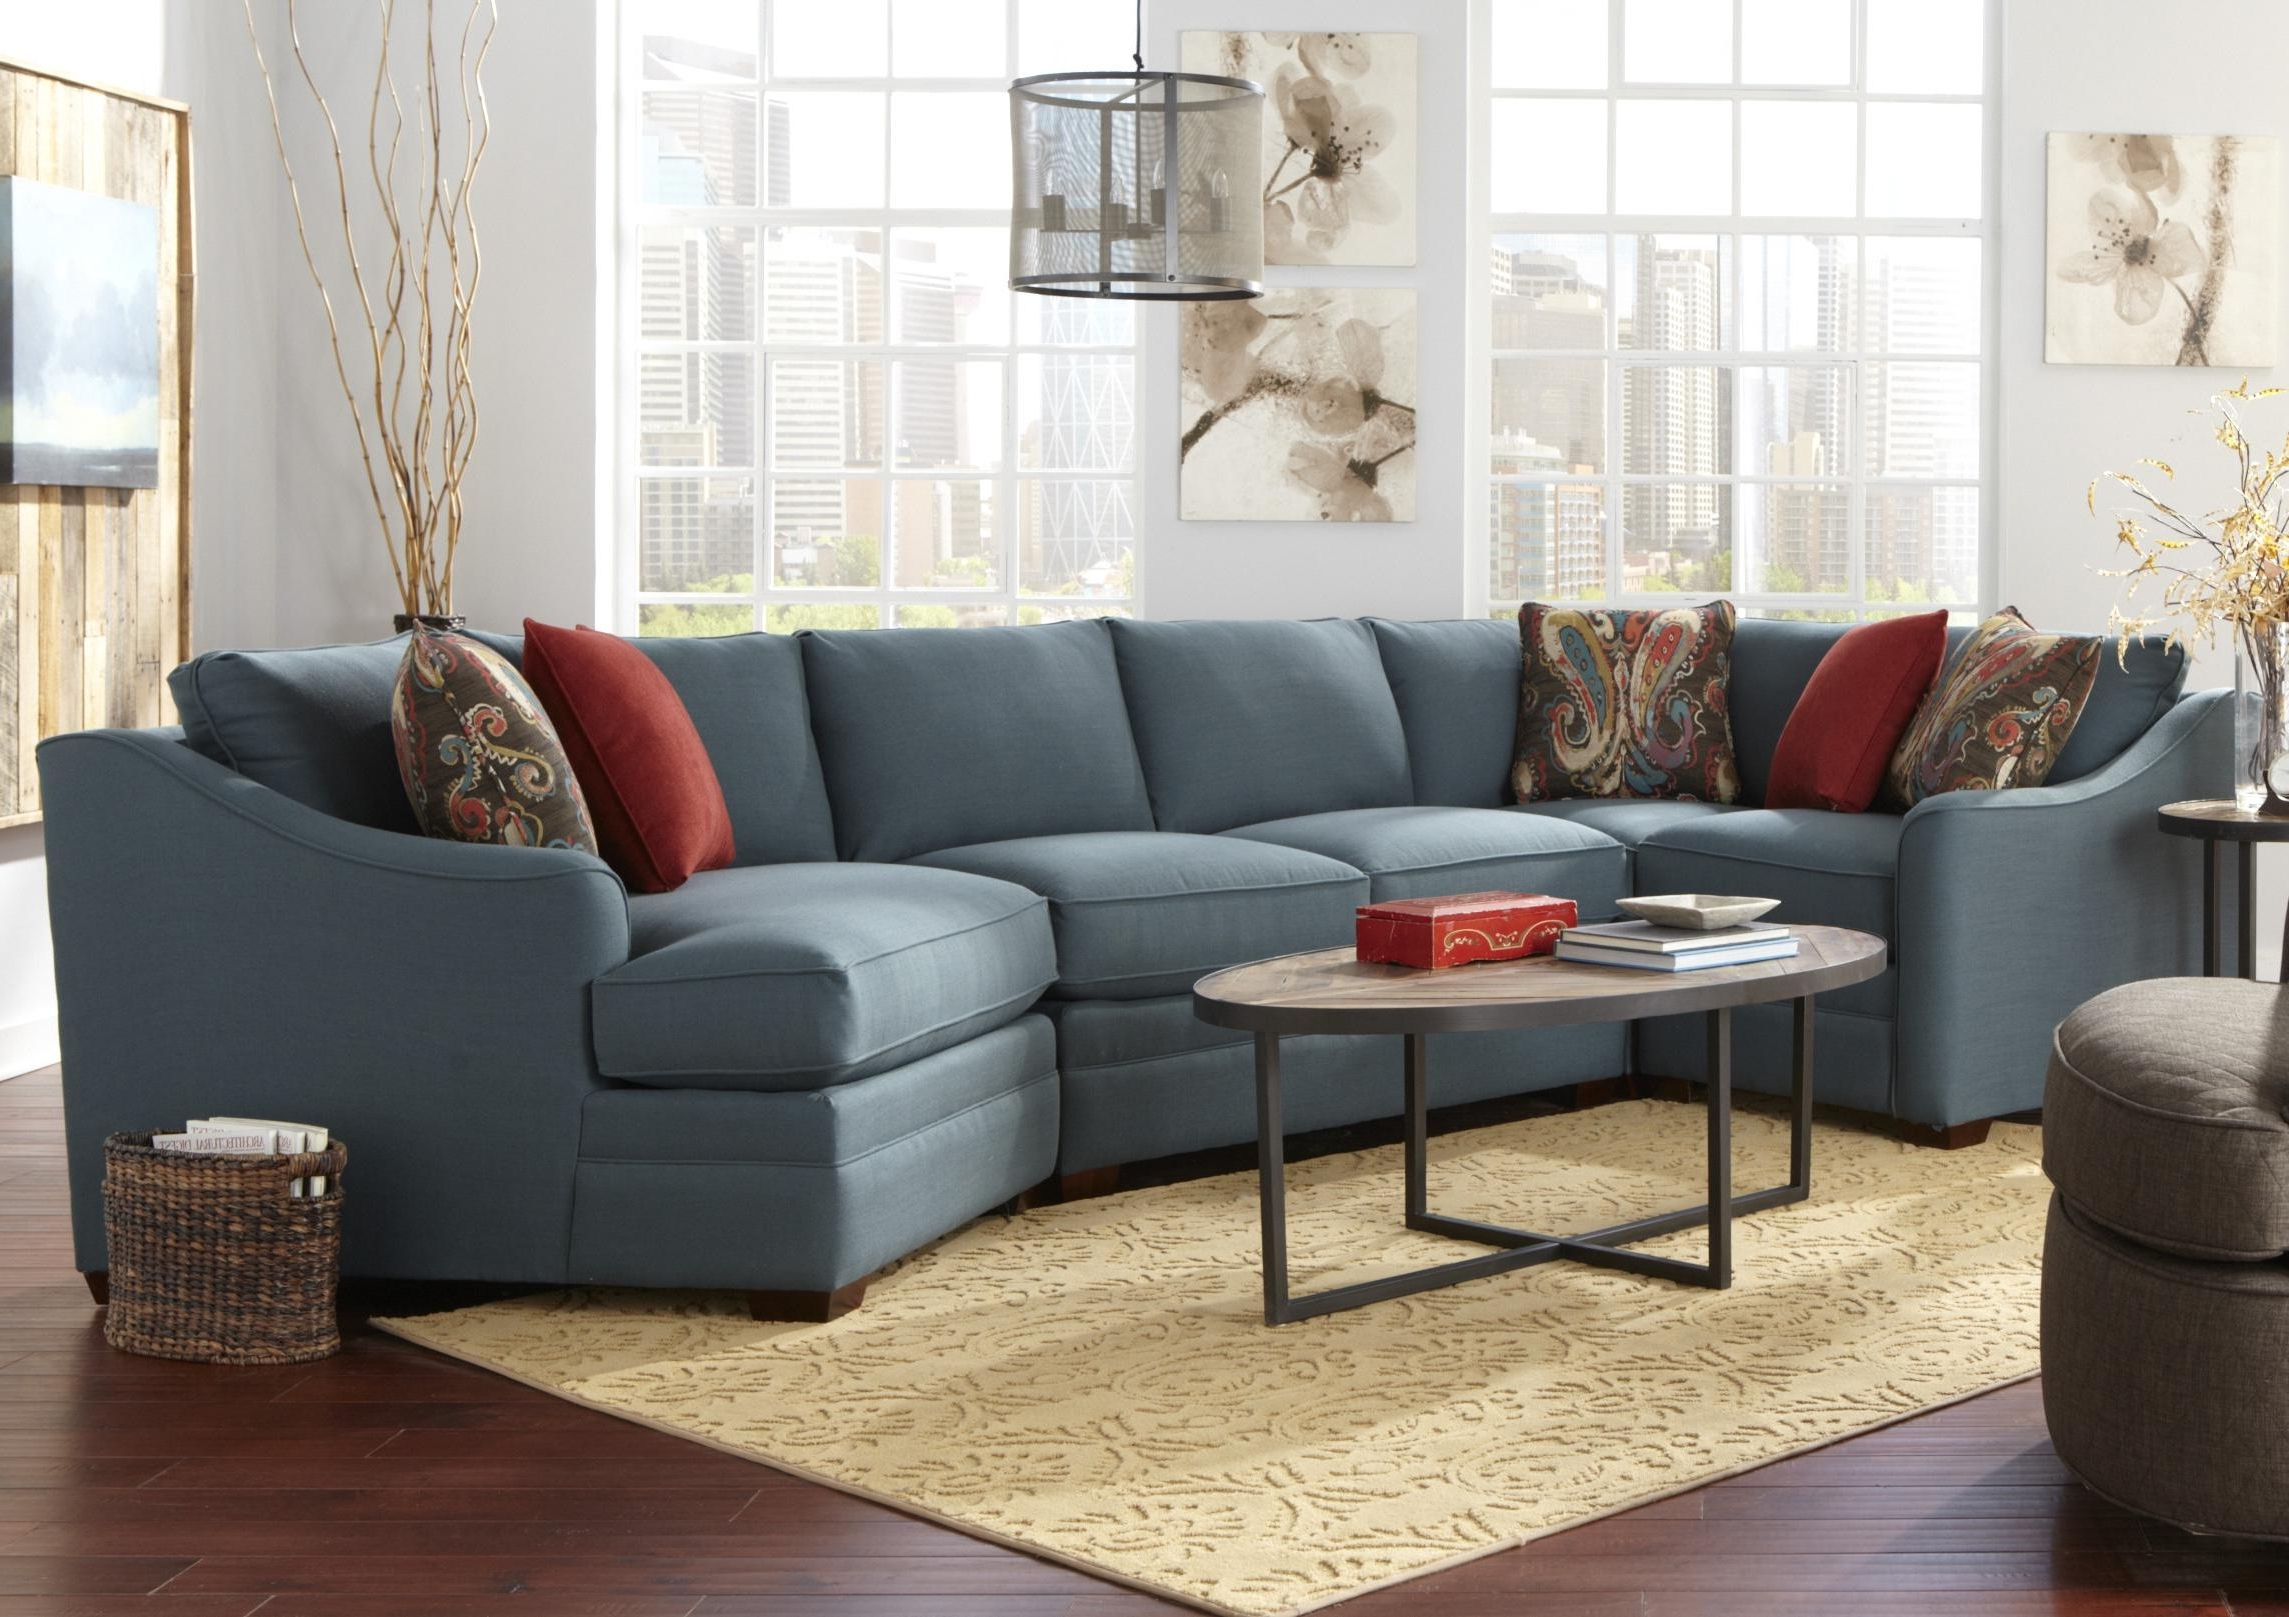 Marmsweb Within Well Known Sectional Sofas In Hyderabad (View 2 of 20)